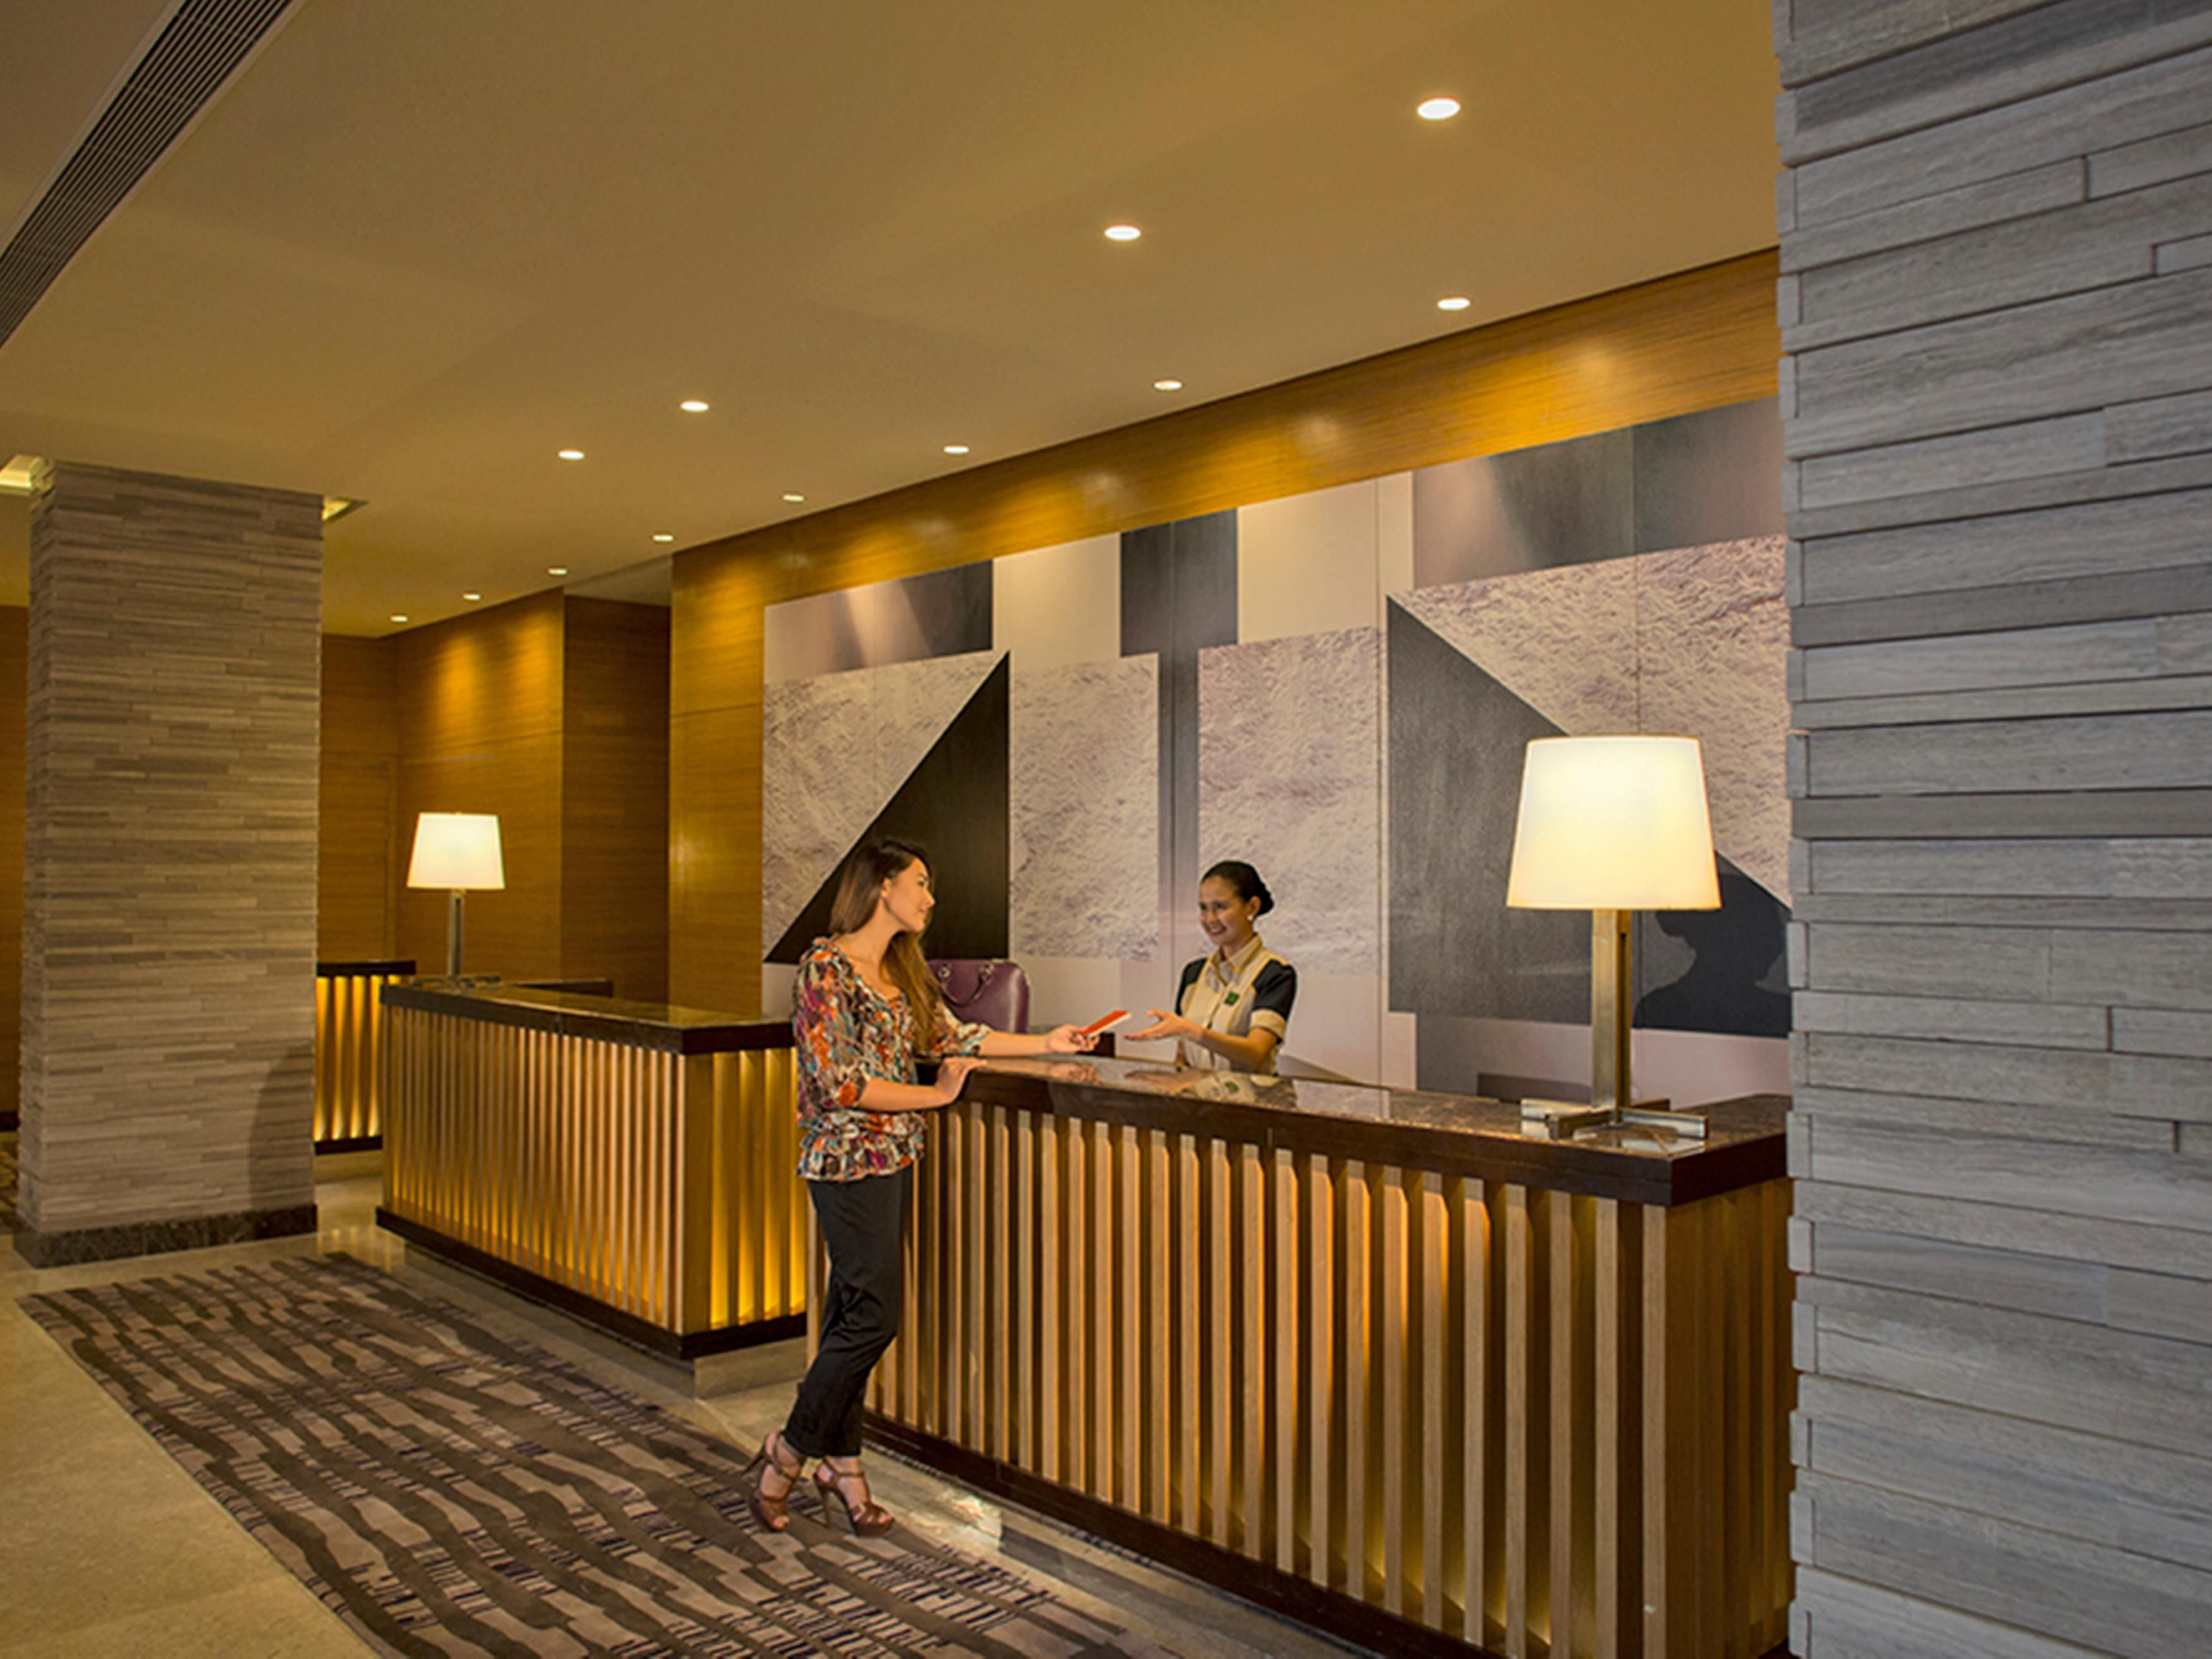 Be welcomed by our friendly Front Desk staffs when you check-in